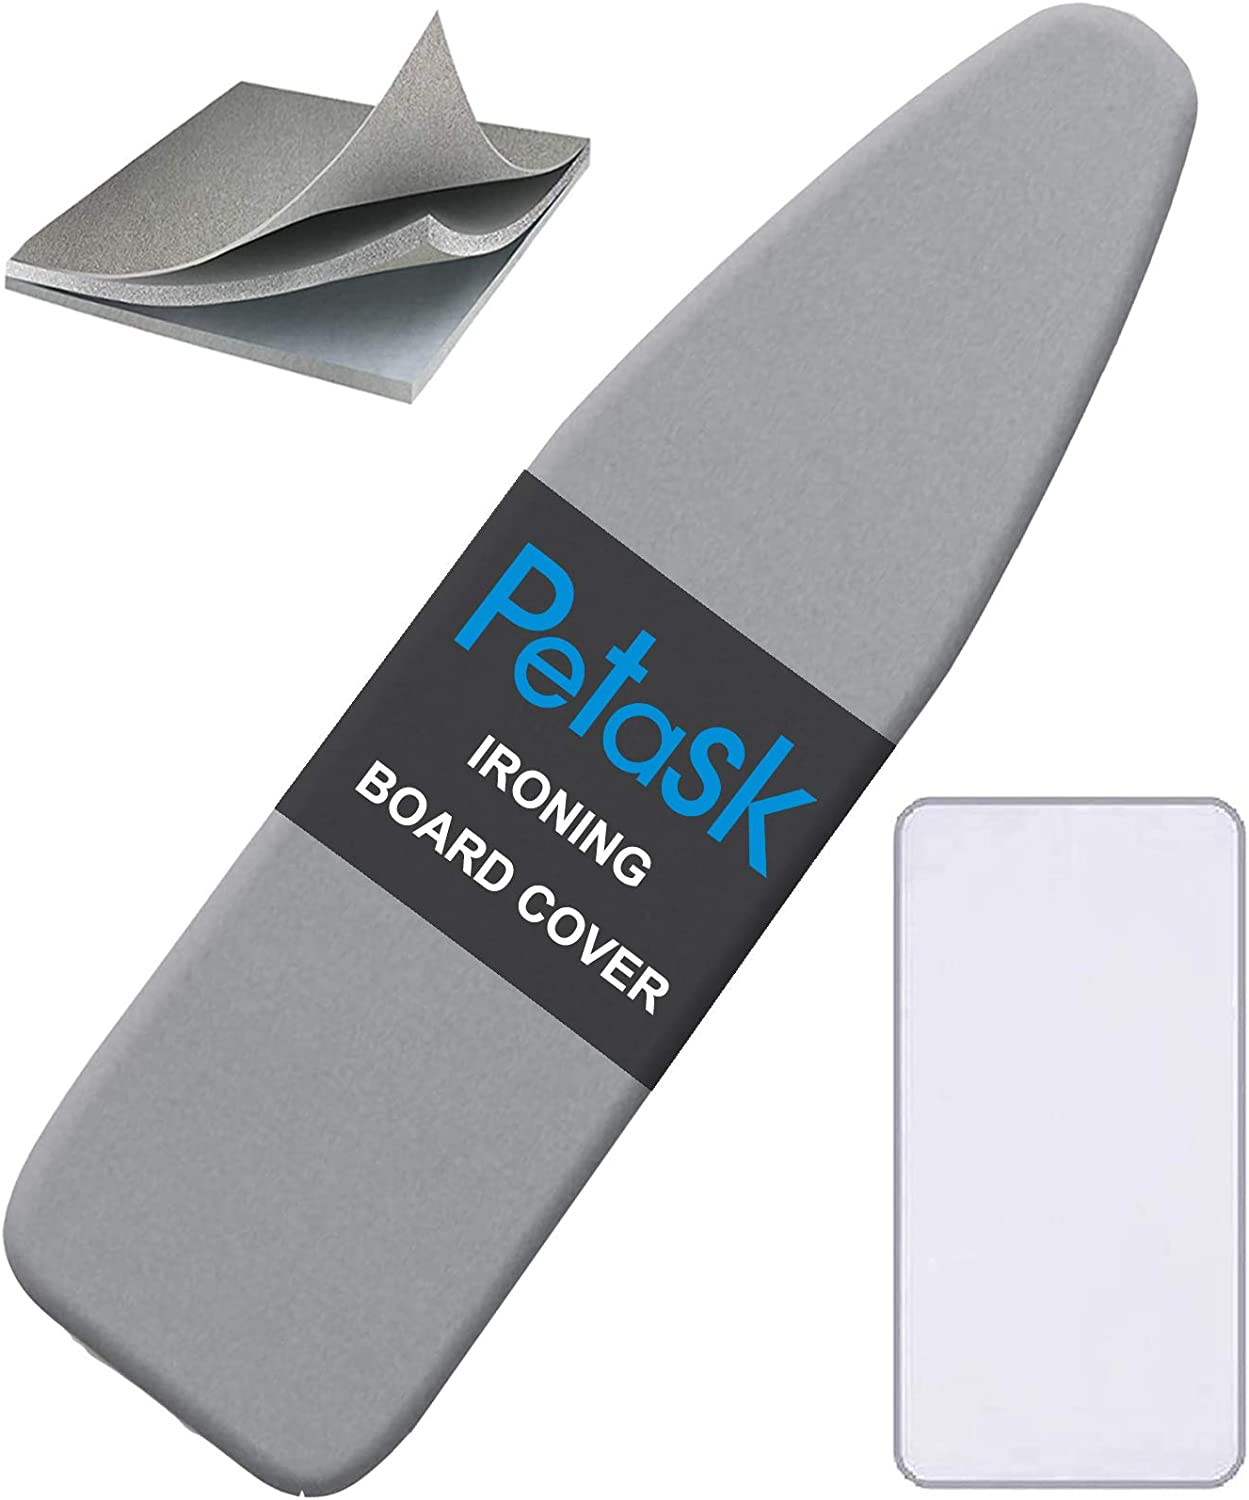 Amazon Com Petask Ironing Board Cover And Pad Silicone Coated Resists Scorching And Staining Ironing Board Pads With Elastic Edges 15 X54 Gray Home Kitchen